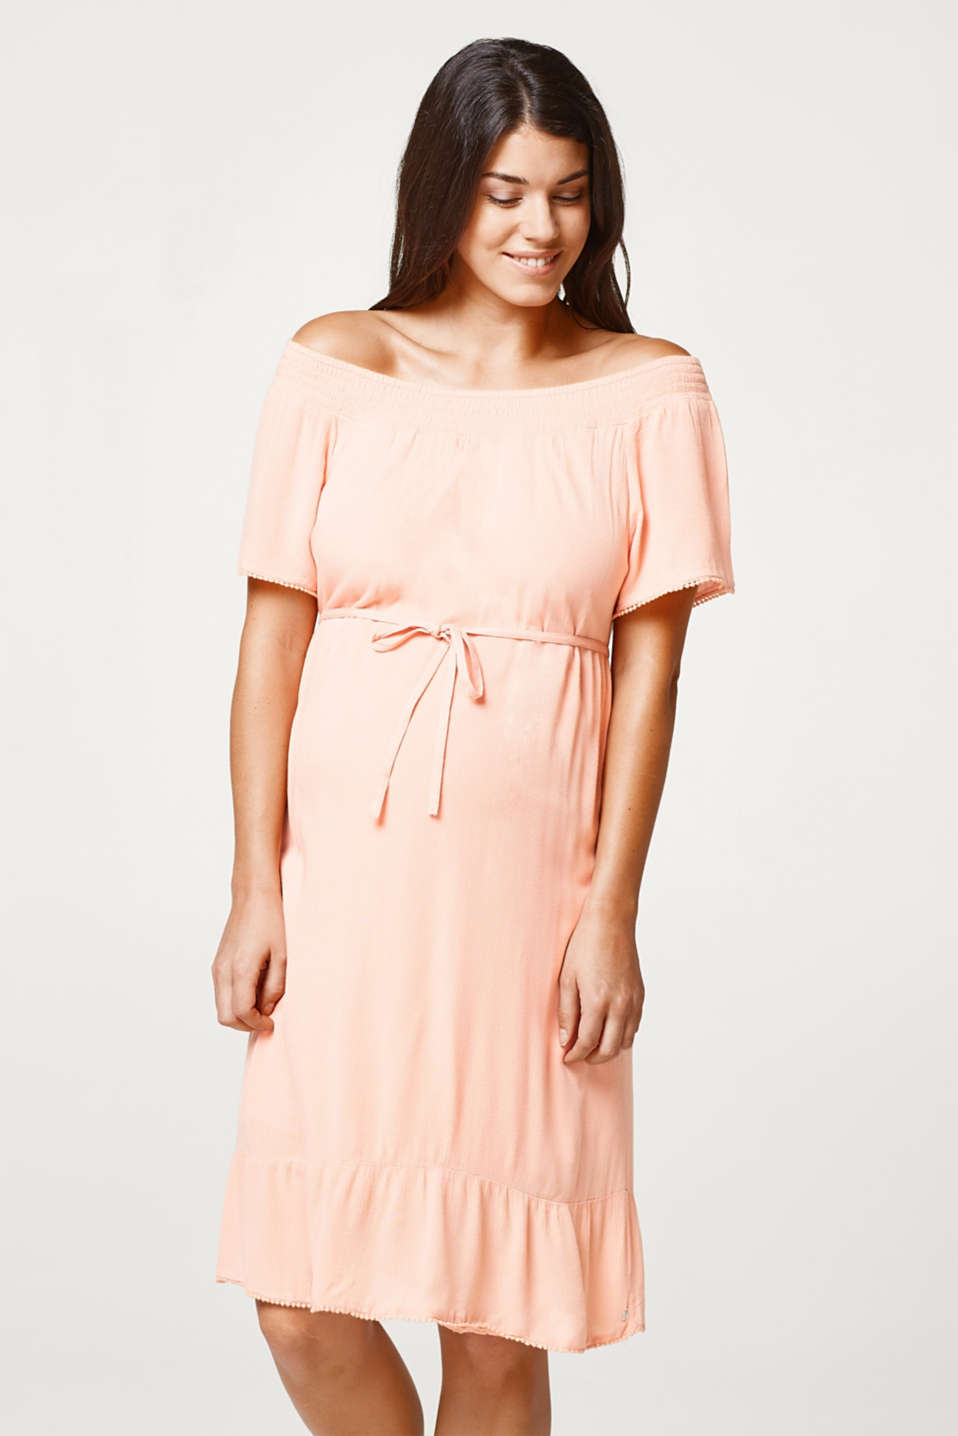 Esprit - Flowing crinkle dress with dainty borders